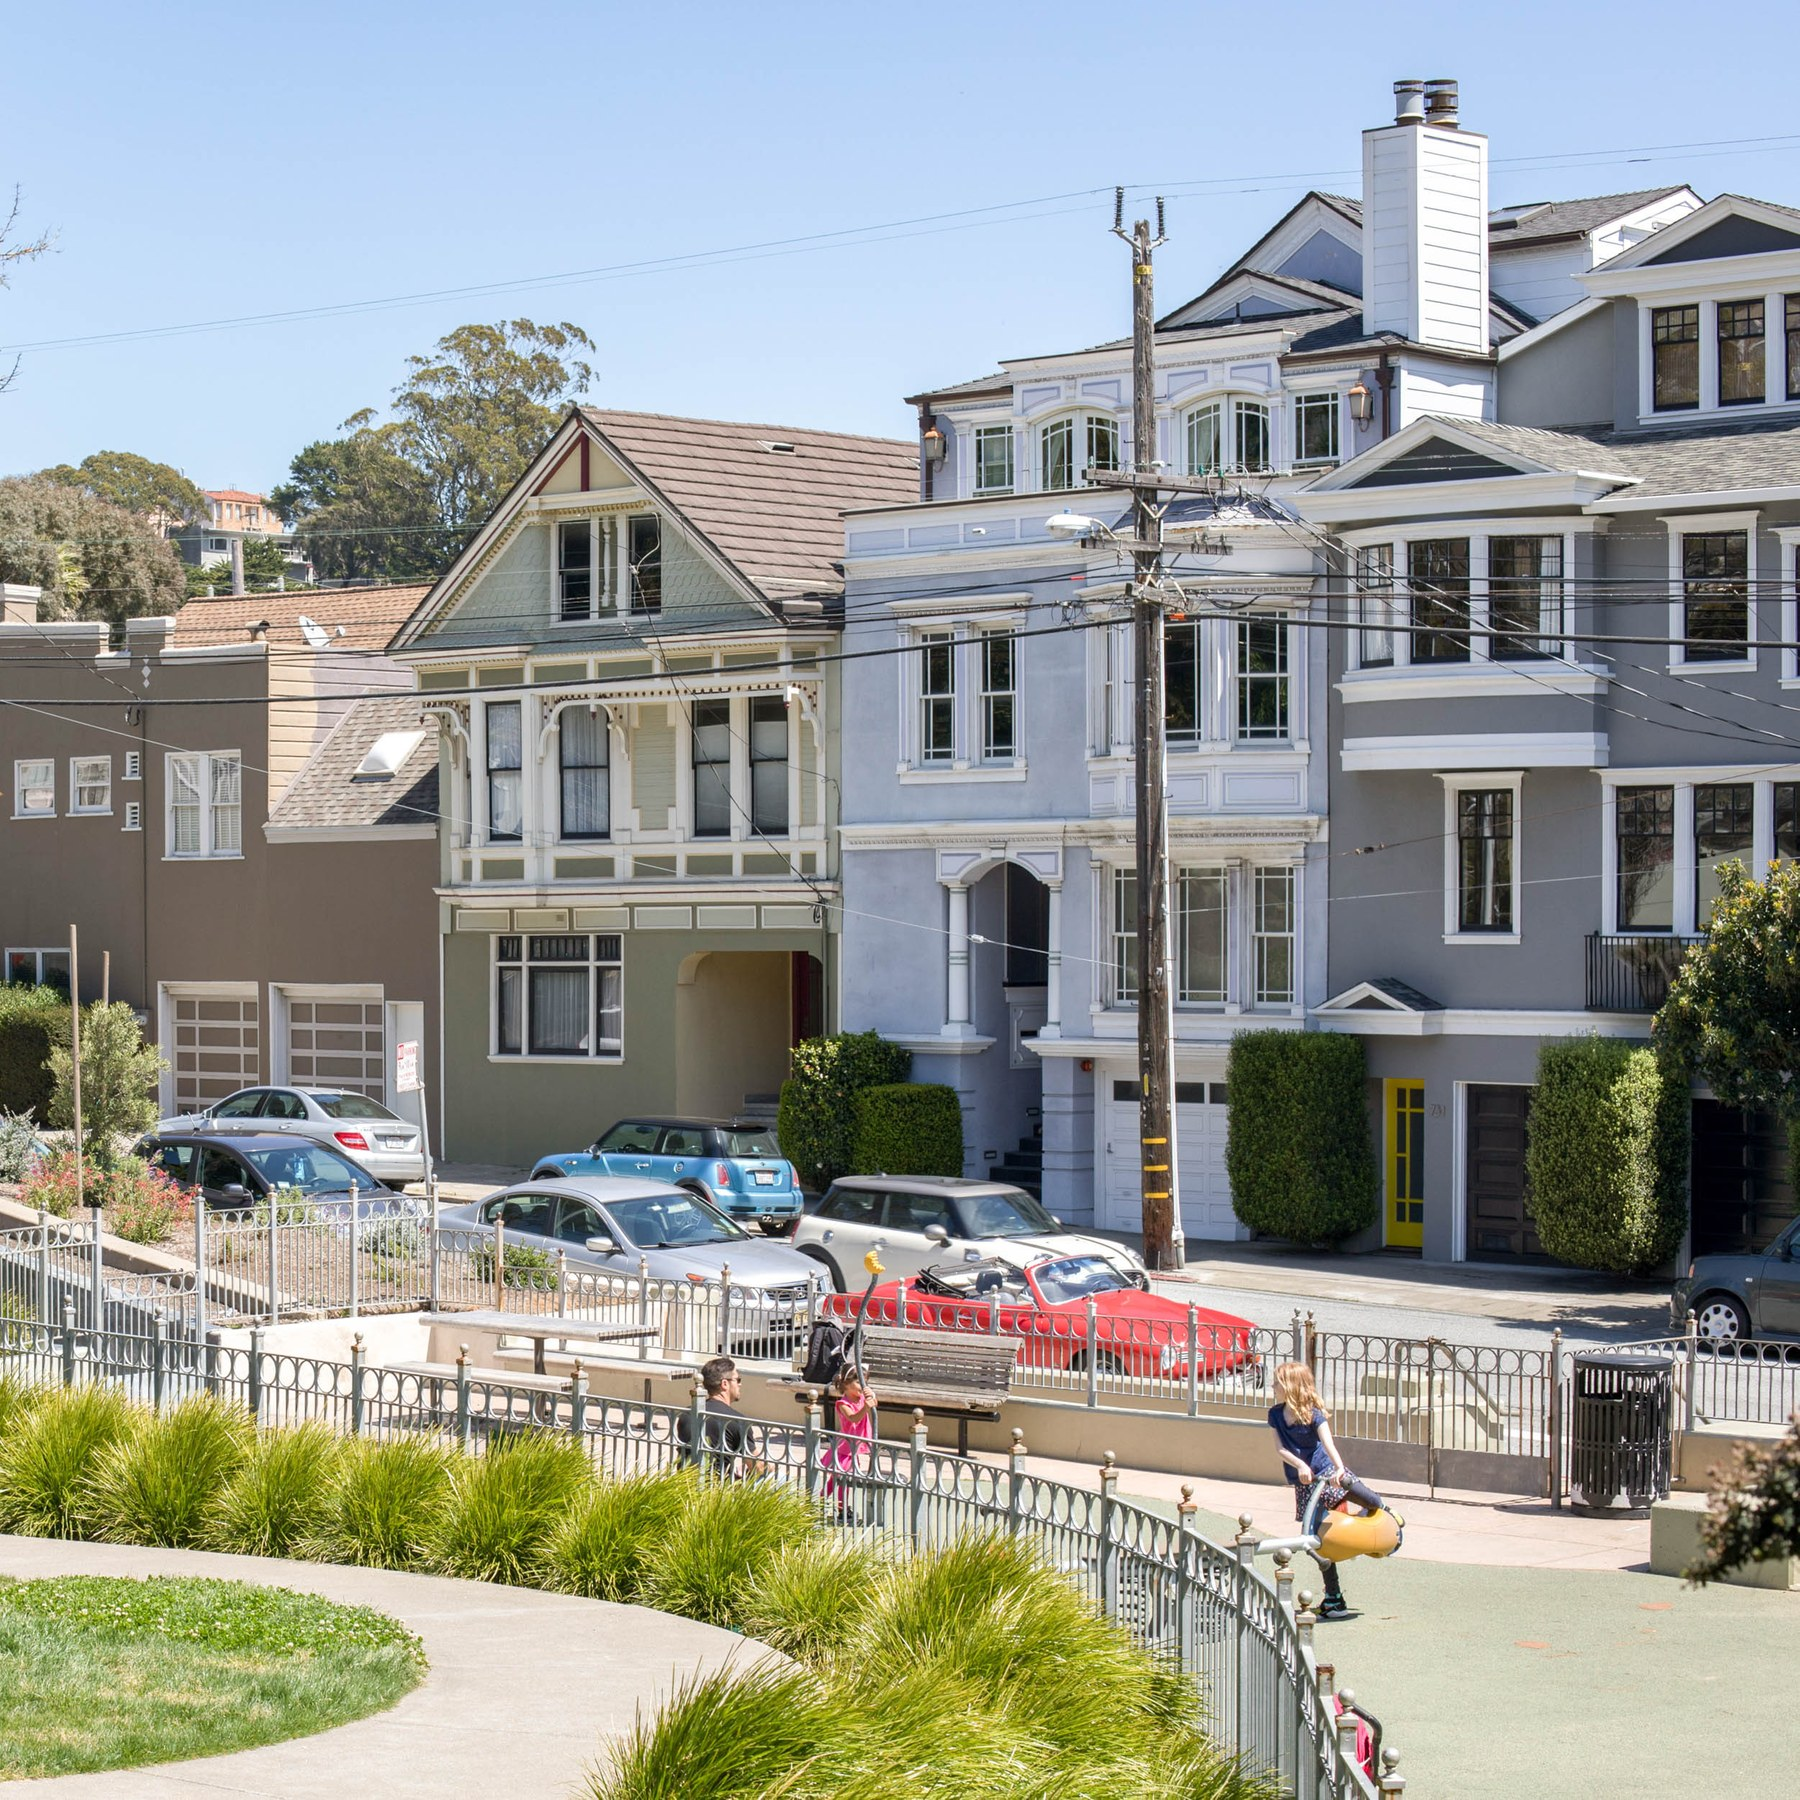 Noe Valley, San Francisco CA - Neighborhood Guide